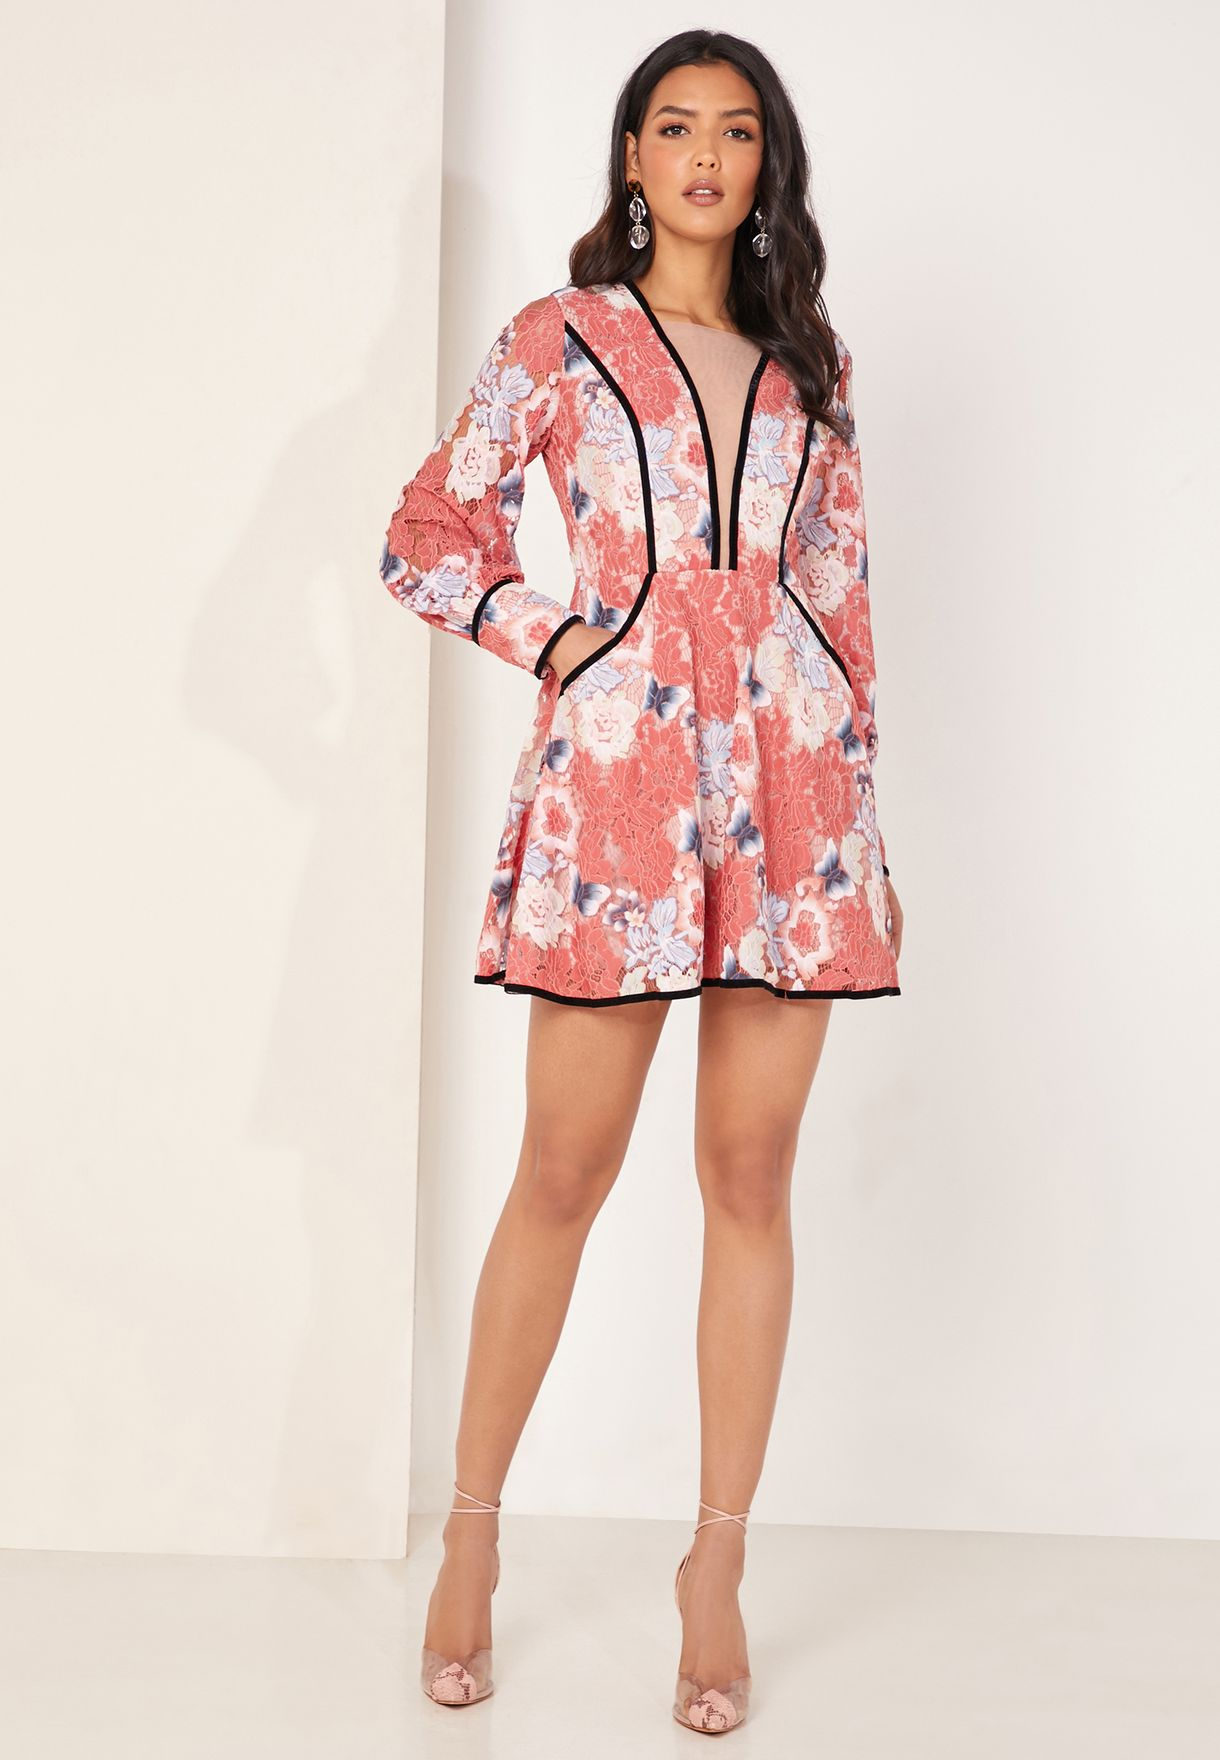 Ashlee Frloral Print Puff Sleeve Dress